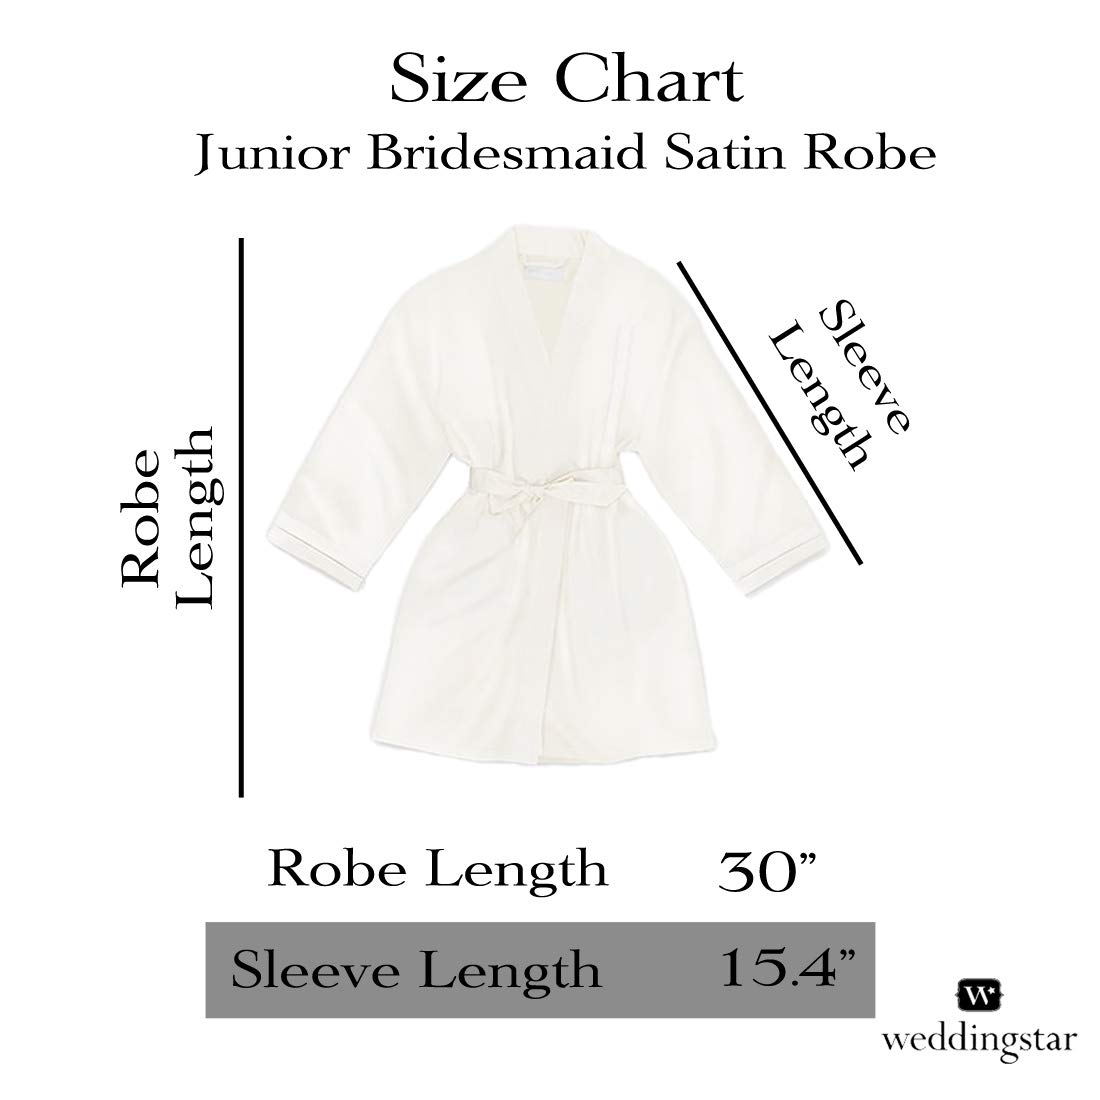 Personalized Junior Bridesmaid Satin Robe with Pockets with Customizable Monogram Perfect Bridal Gift by Weddingstar White